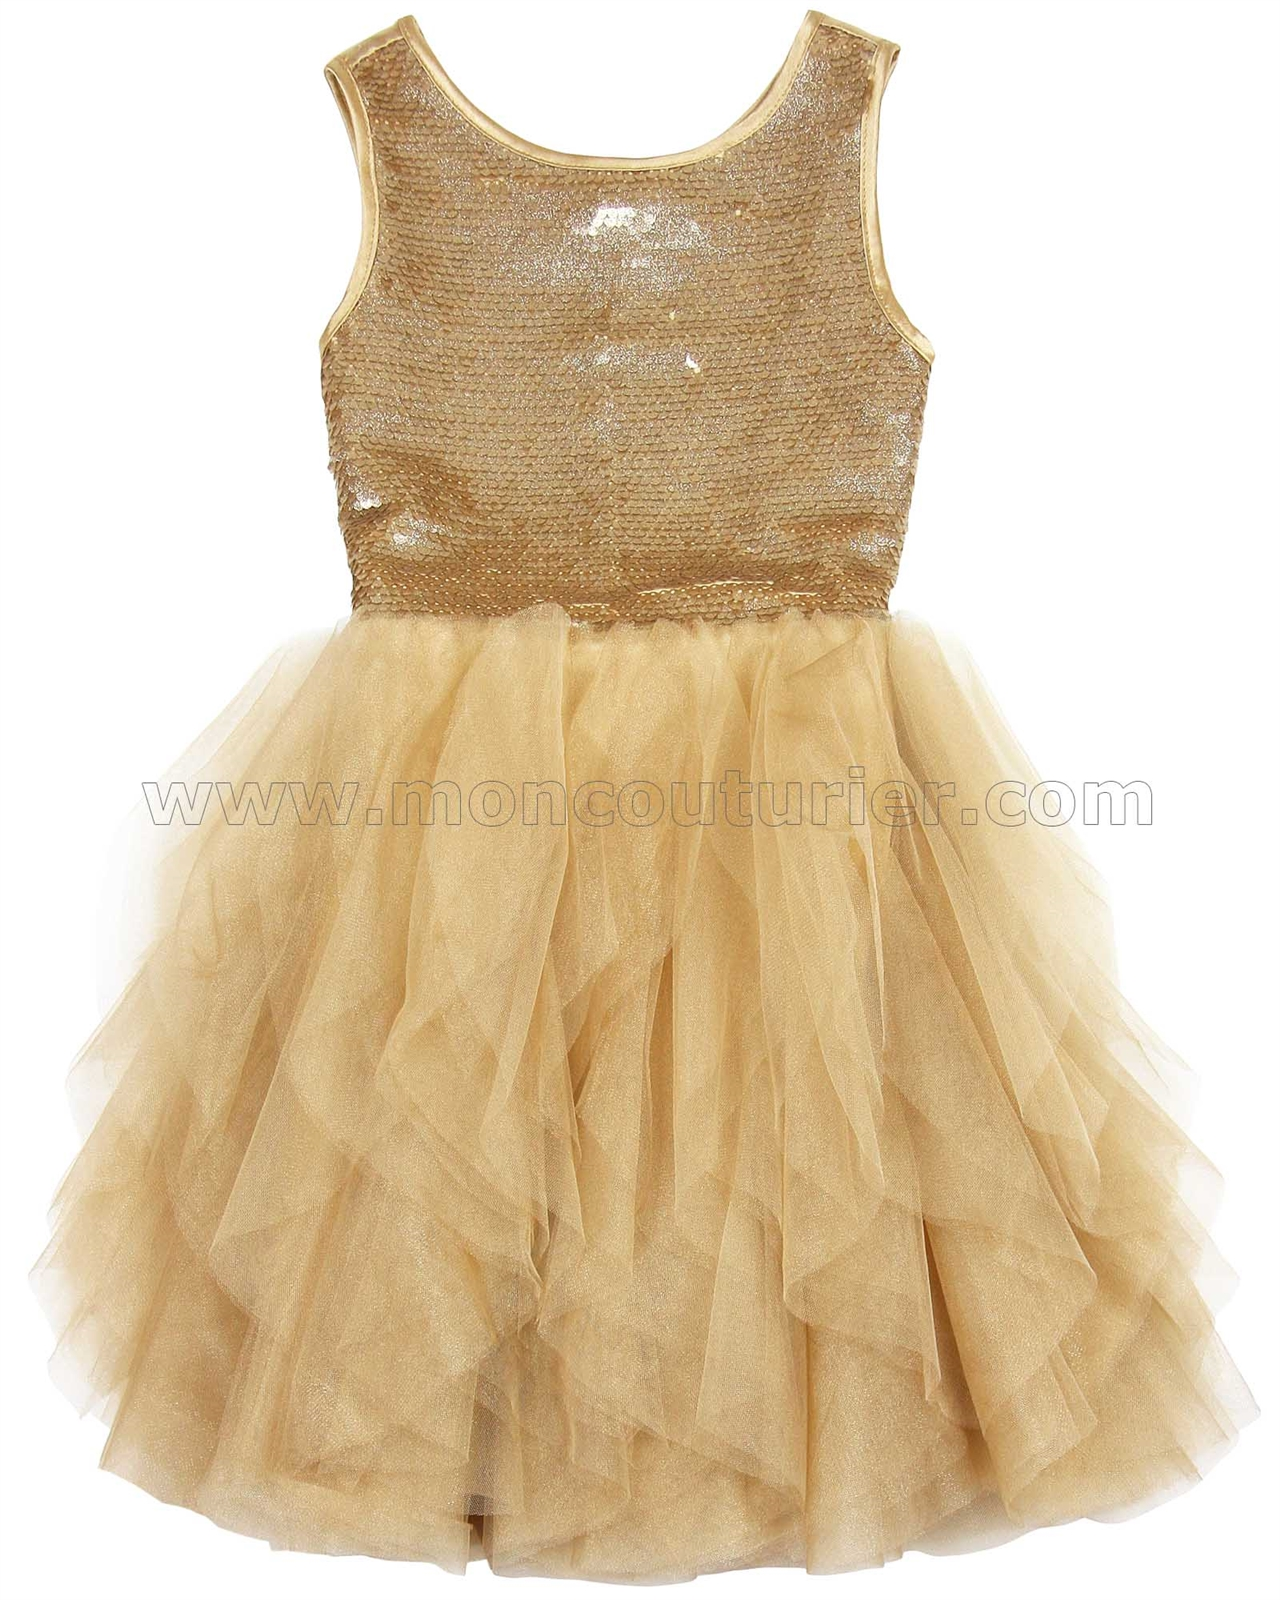 7ac5a13c3 Biscotti Grand Entrance Party Dress with Tulle Skirt Gold